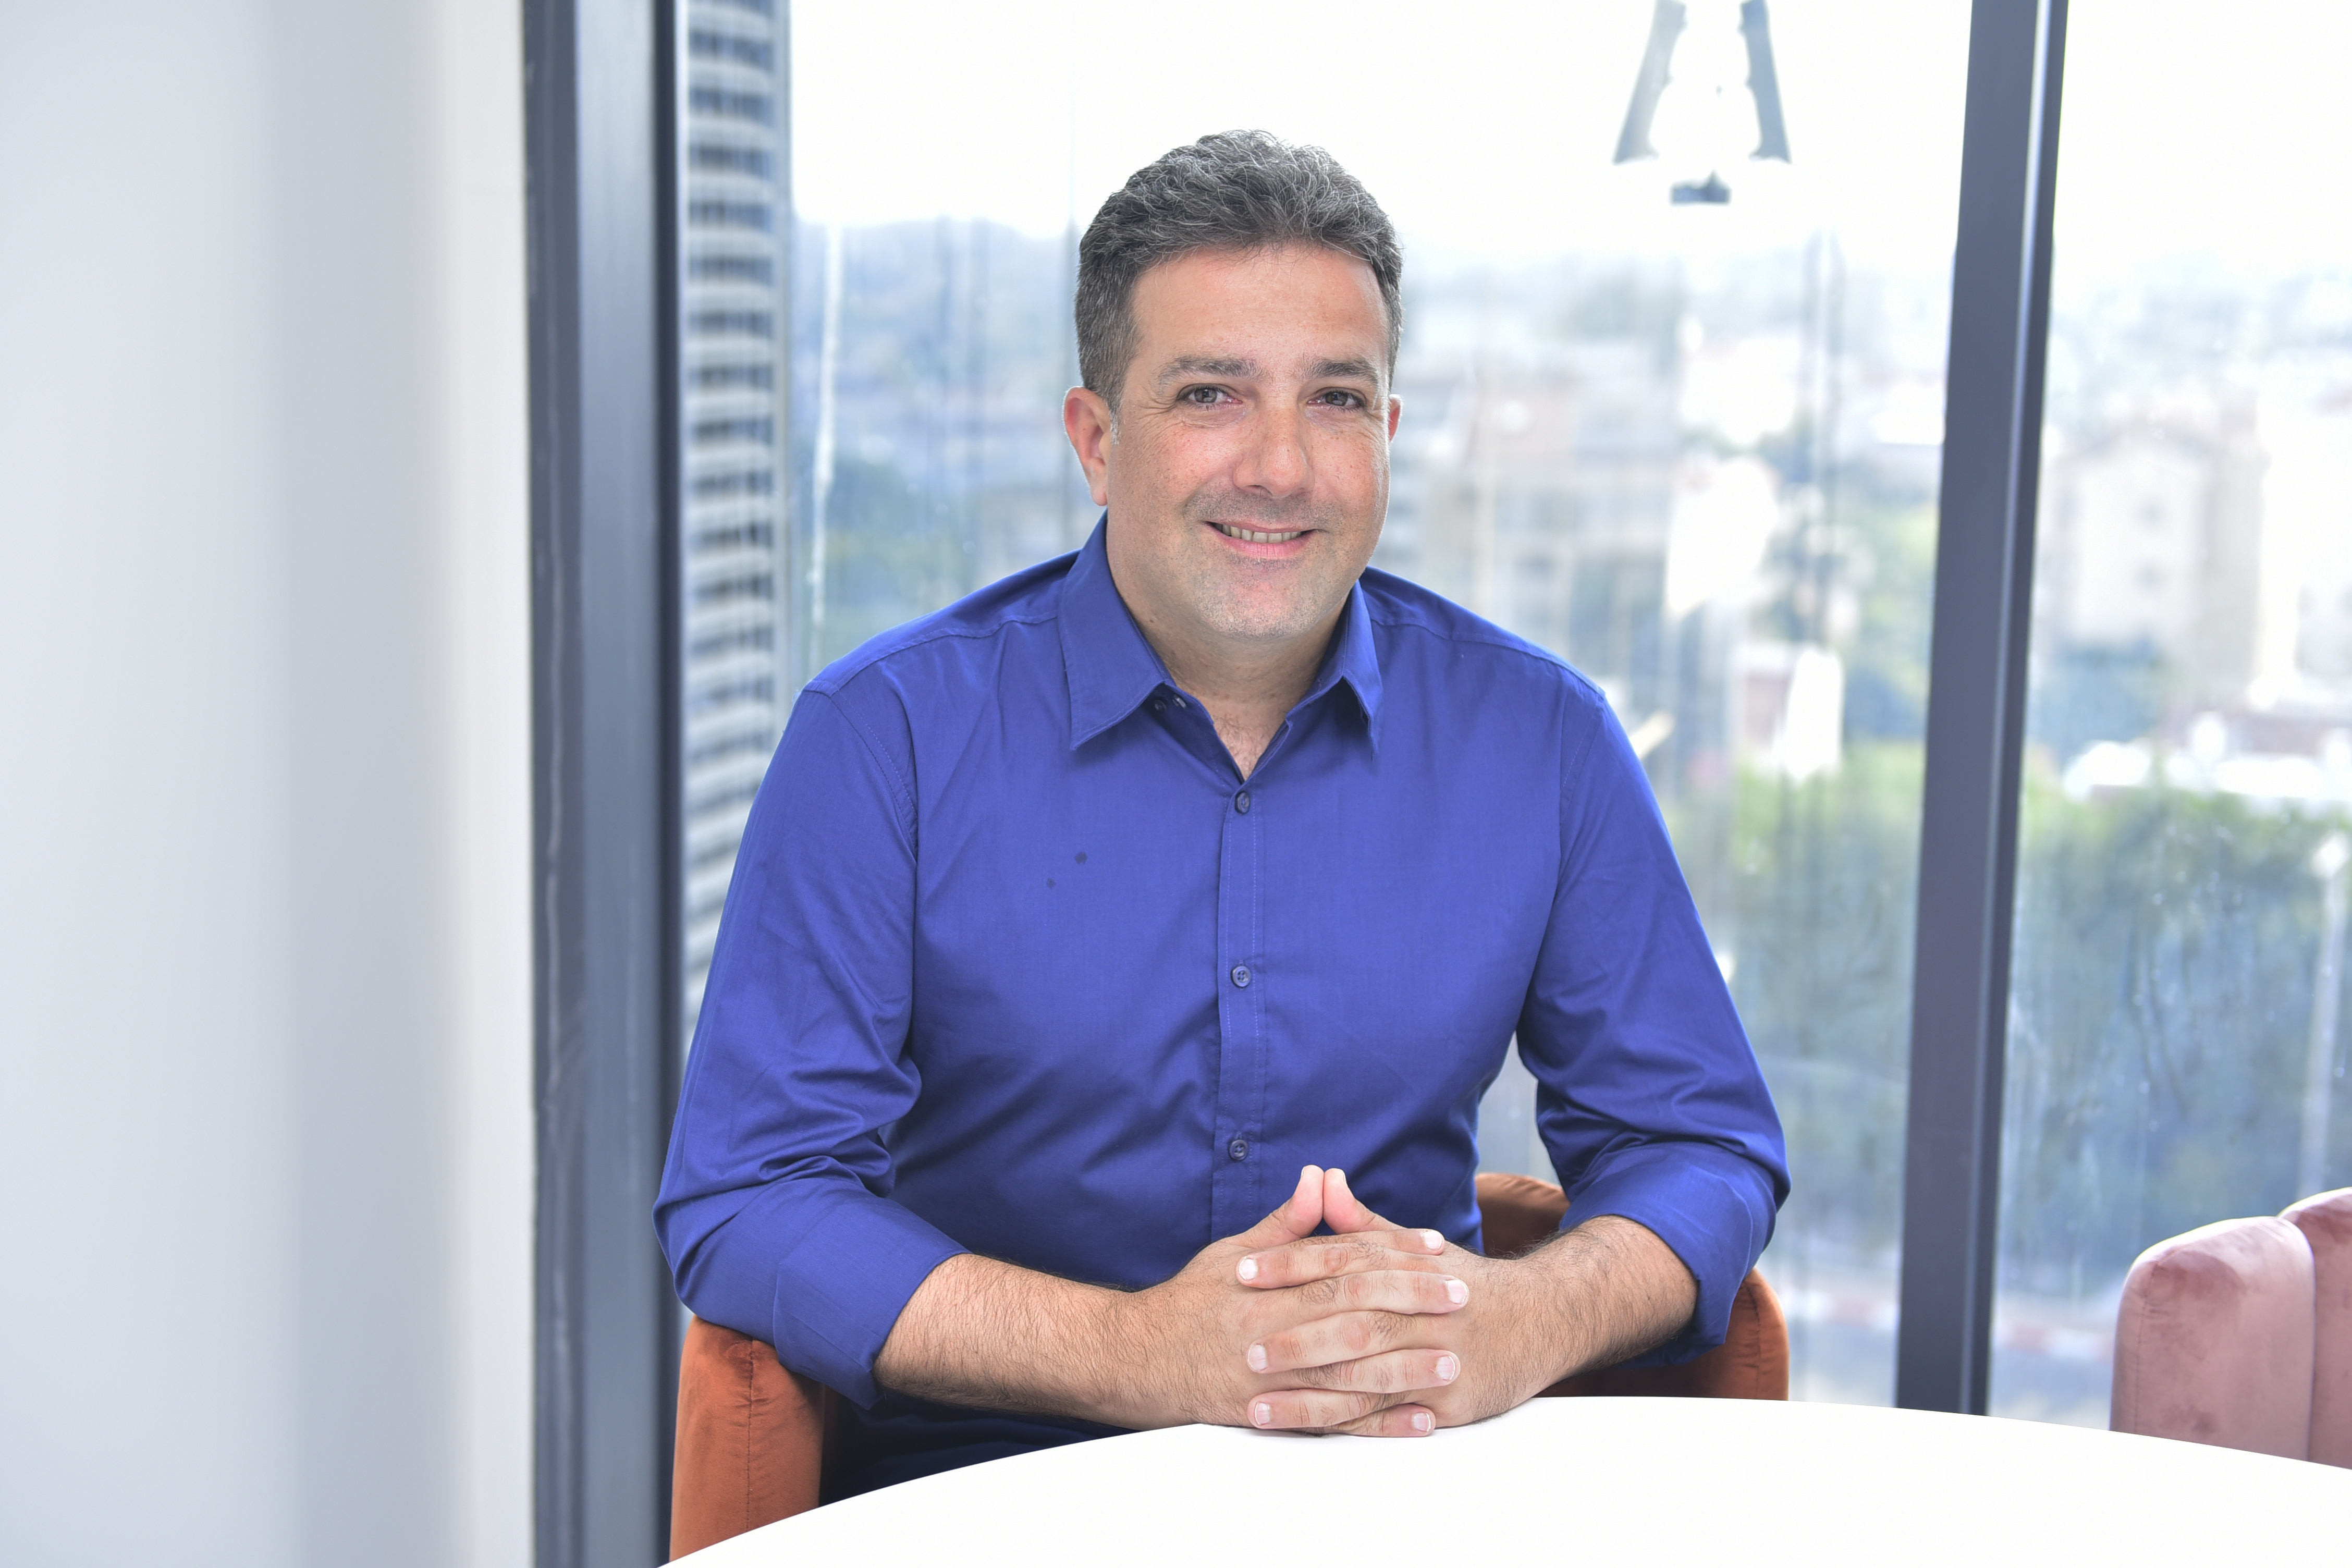 <p>Meet Dror and learn how Enerjoy is delivering a new approach to motivating employees.</p>